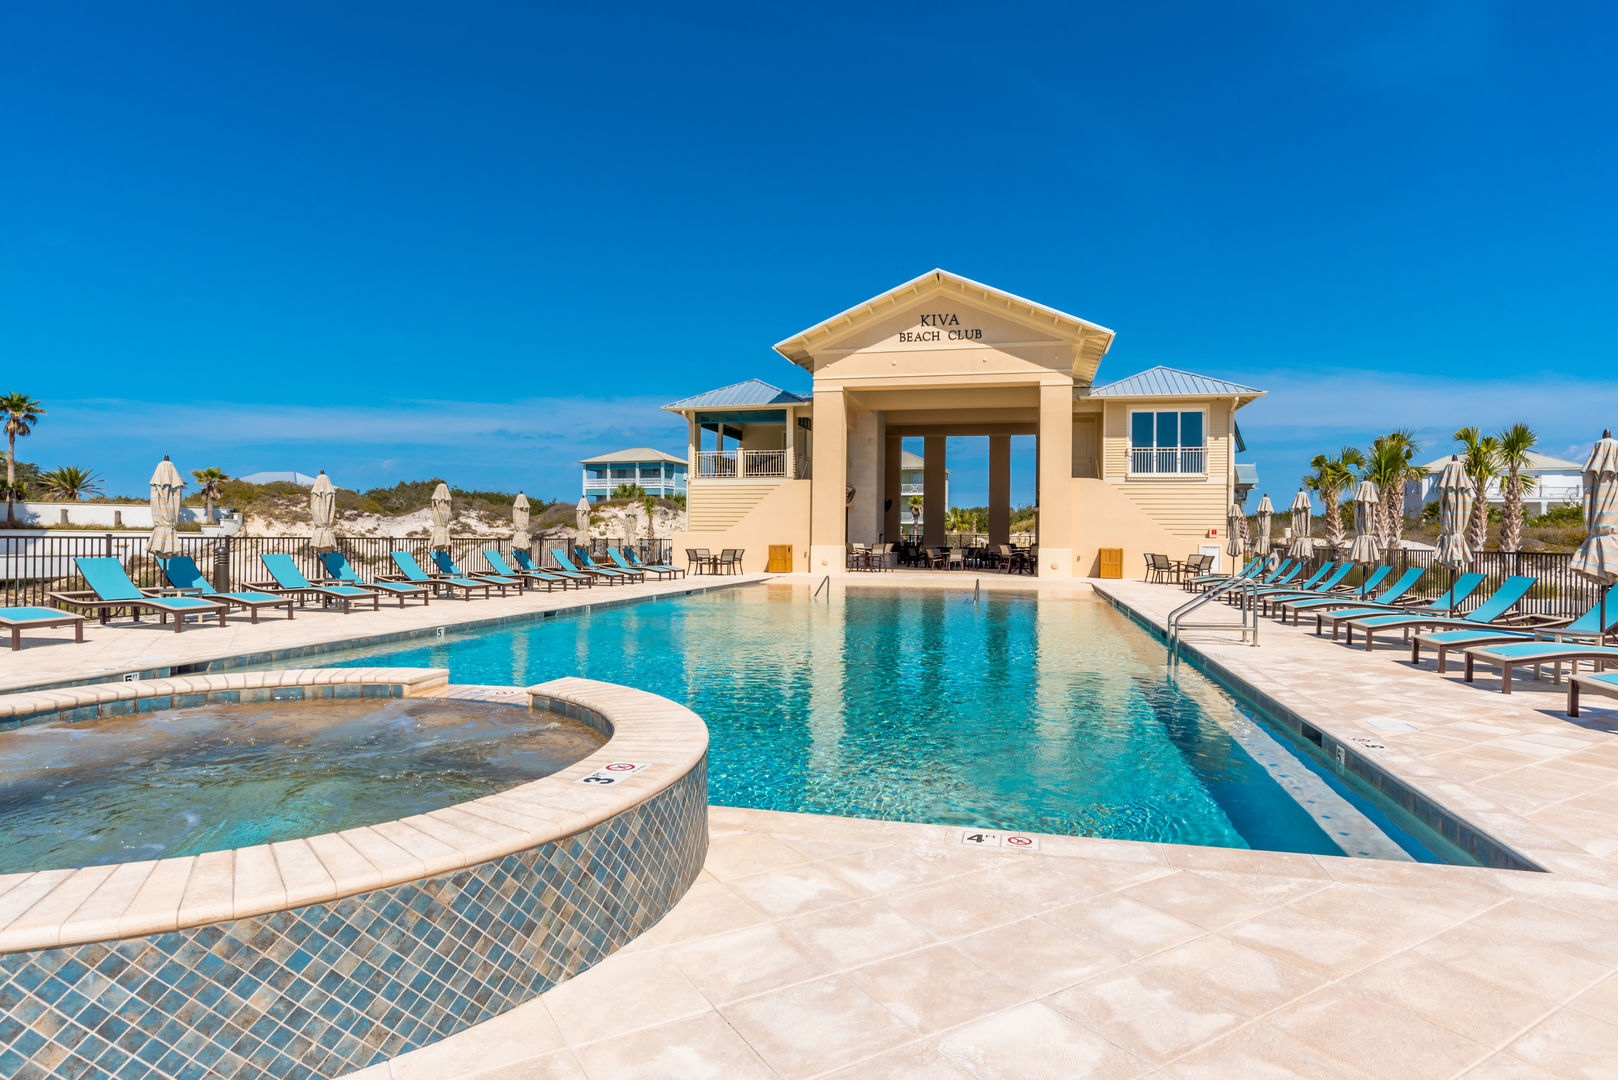 Guests will have access to the Kiva Club pool.